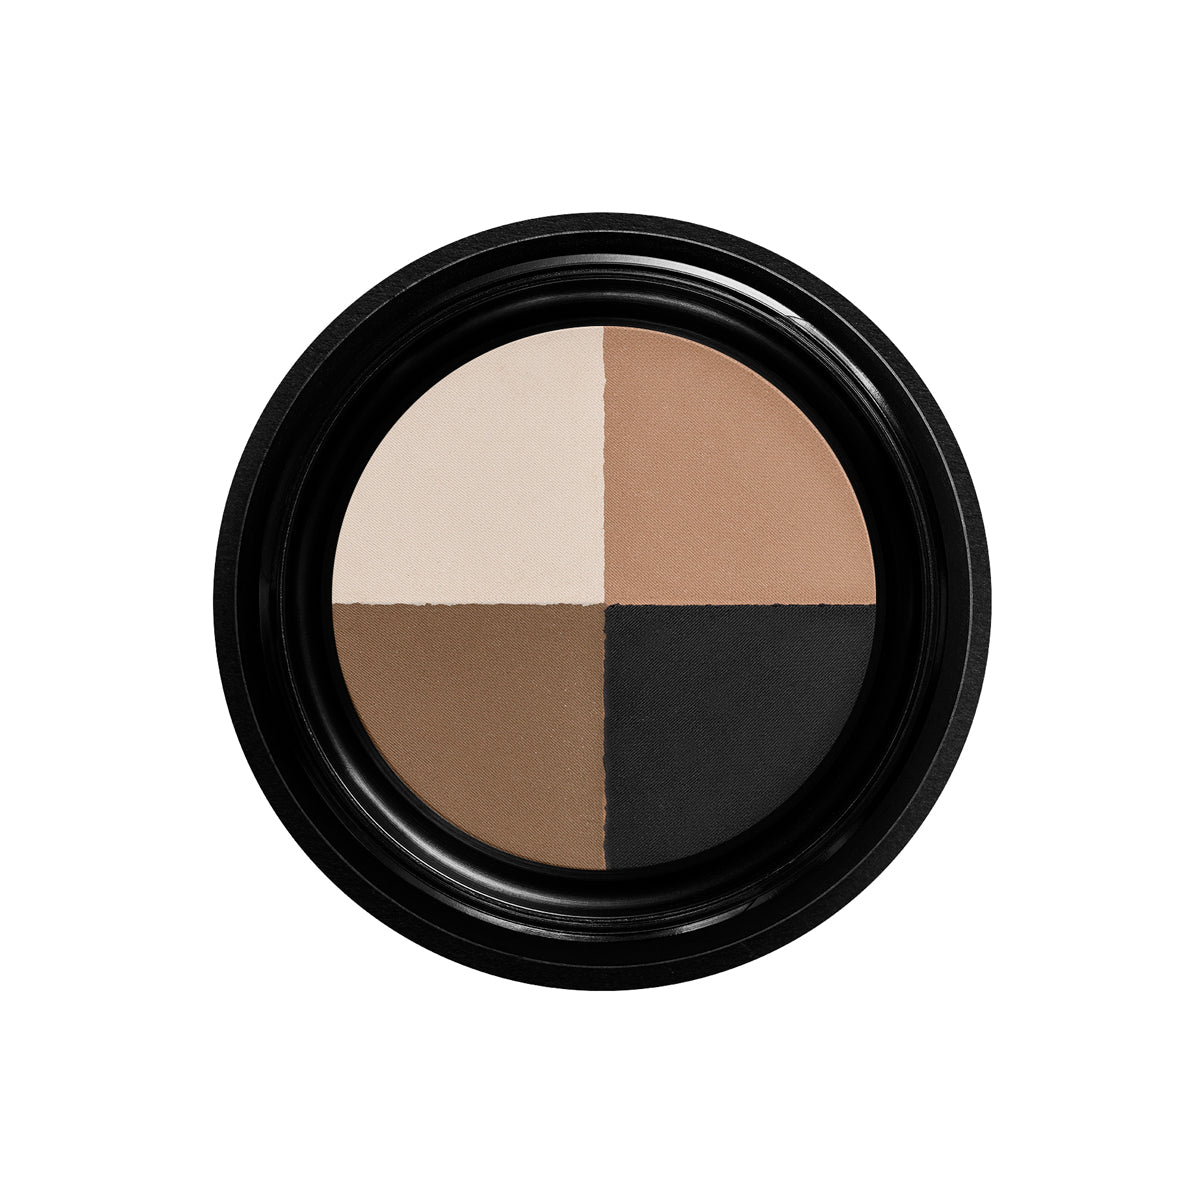 Manasi7 Eye shadow quad of four natural, earthy toned colours. Use on eyes and brows.